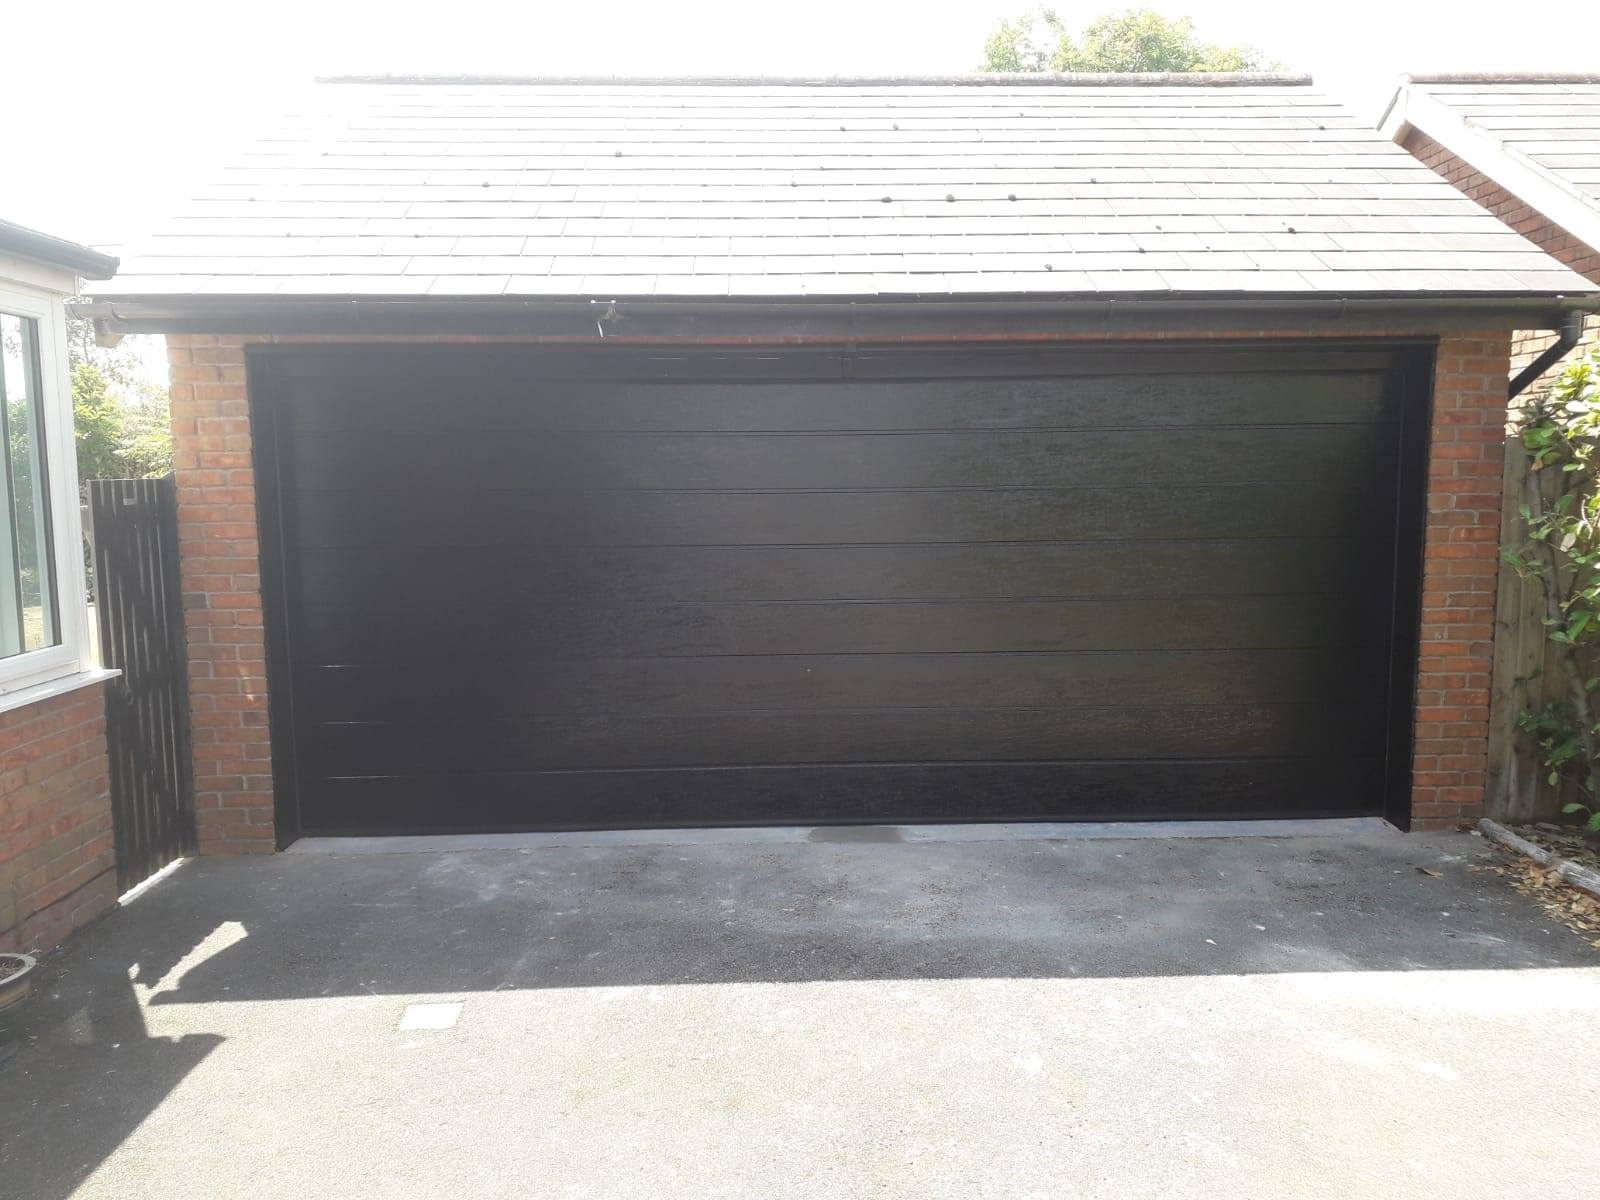 1 x double sectional garage door, powder coated black with a matching surround